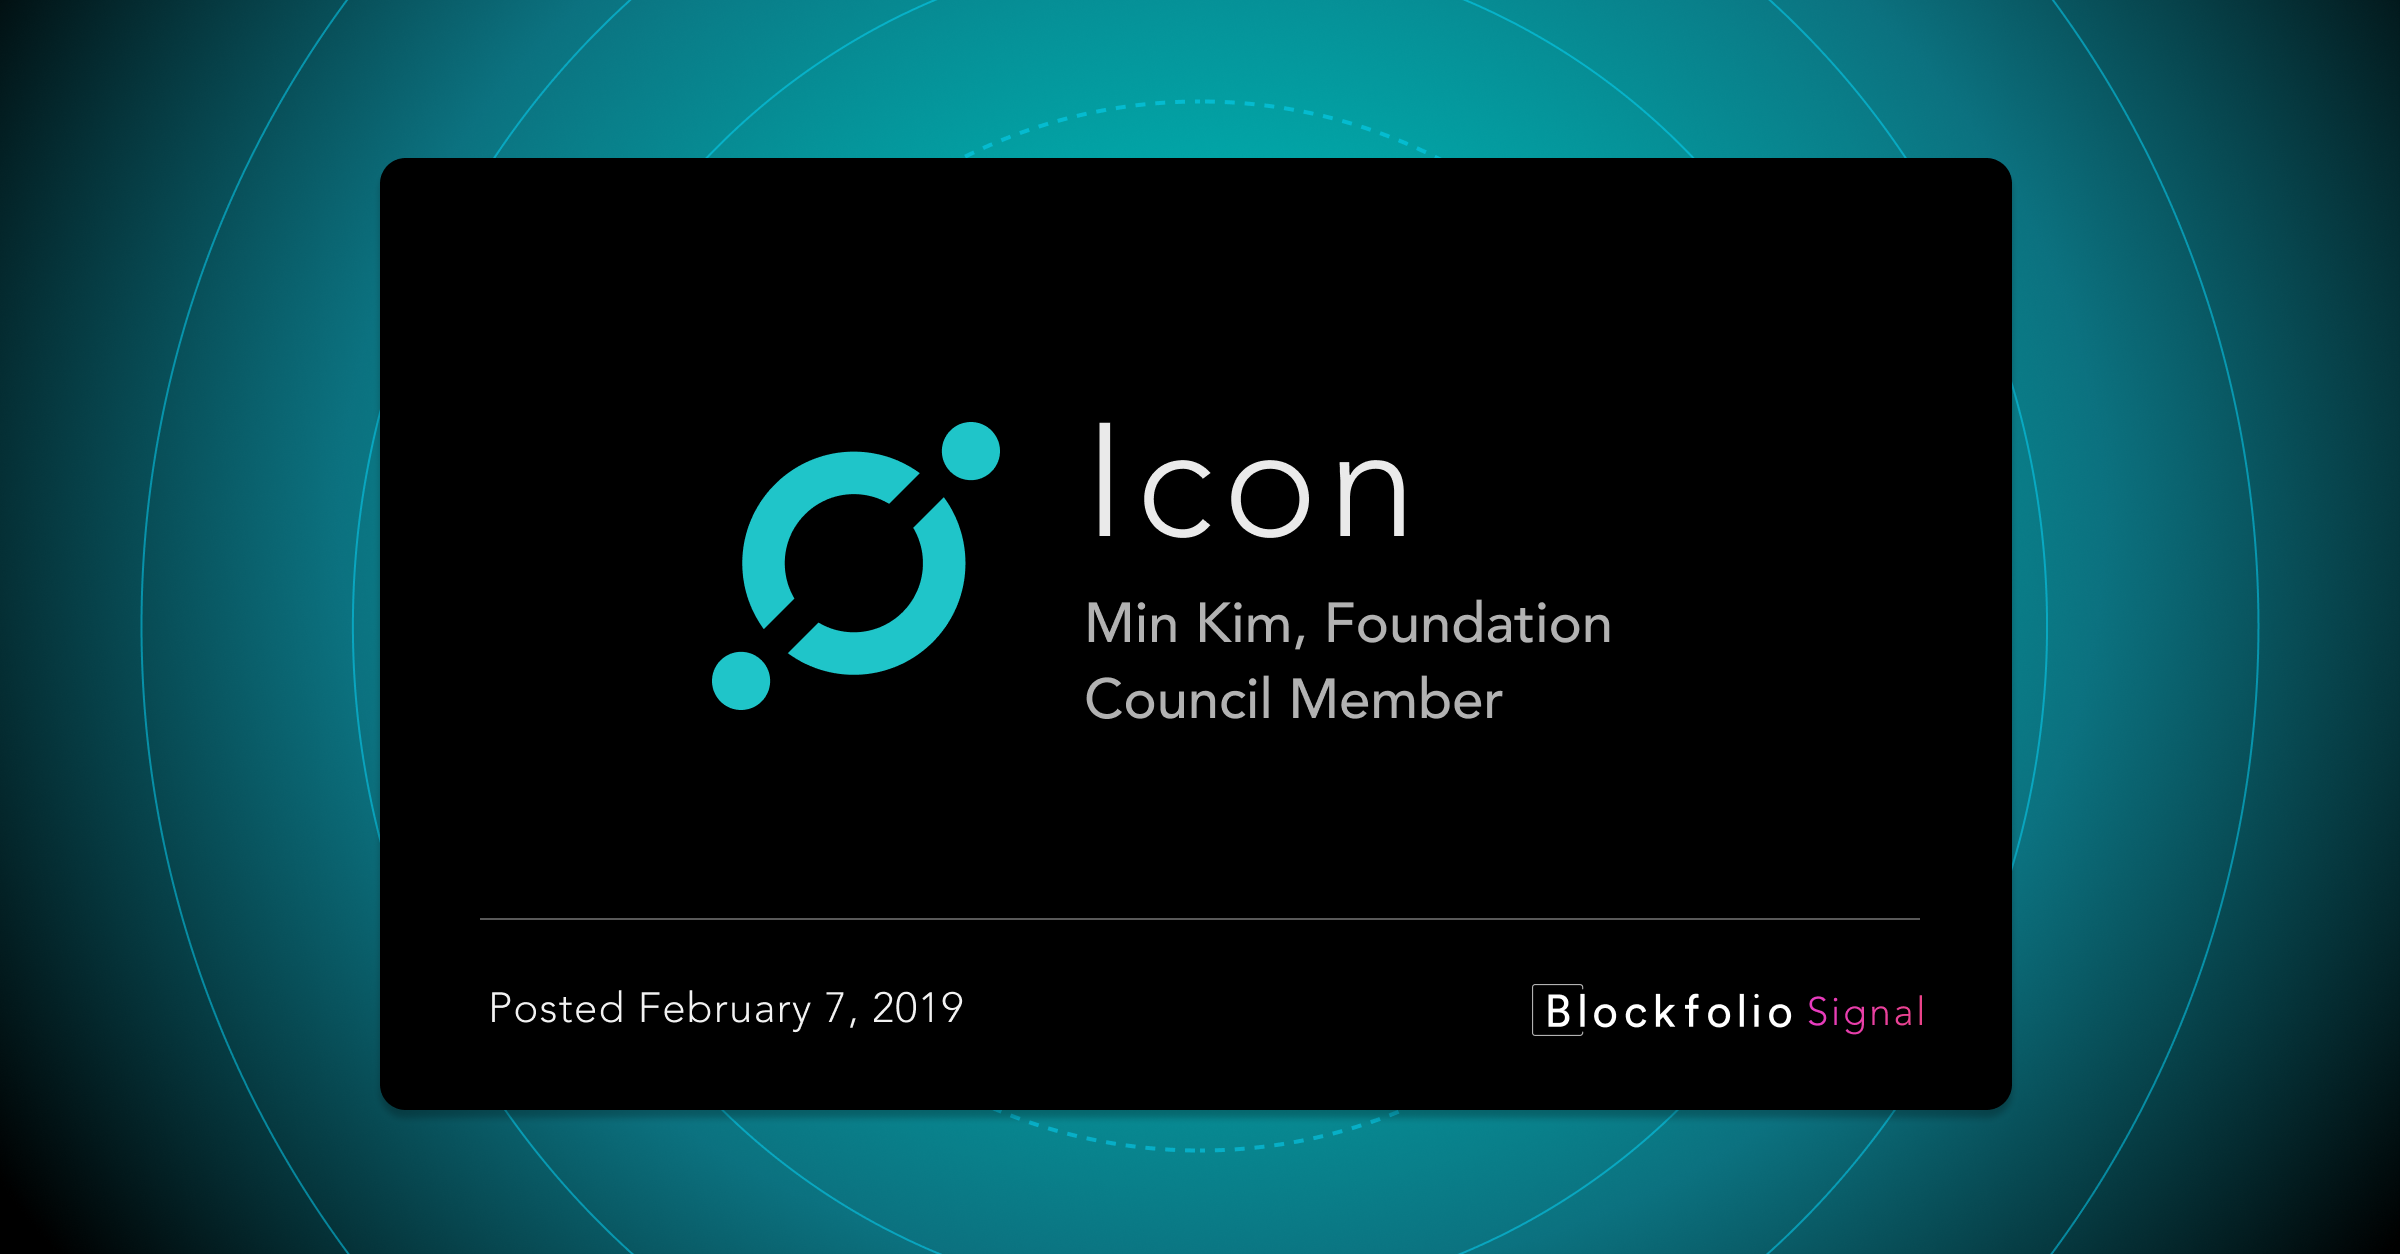 This week in Blockfolio Signal — February 15th, 2019